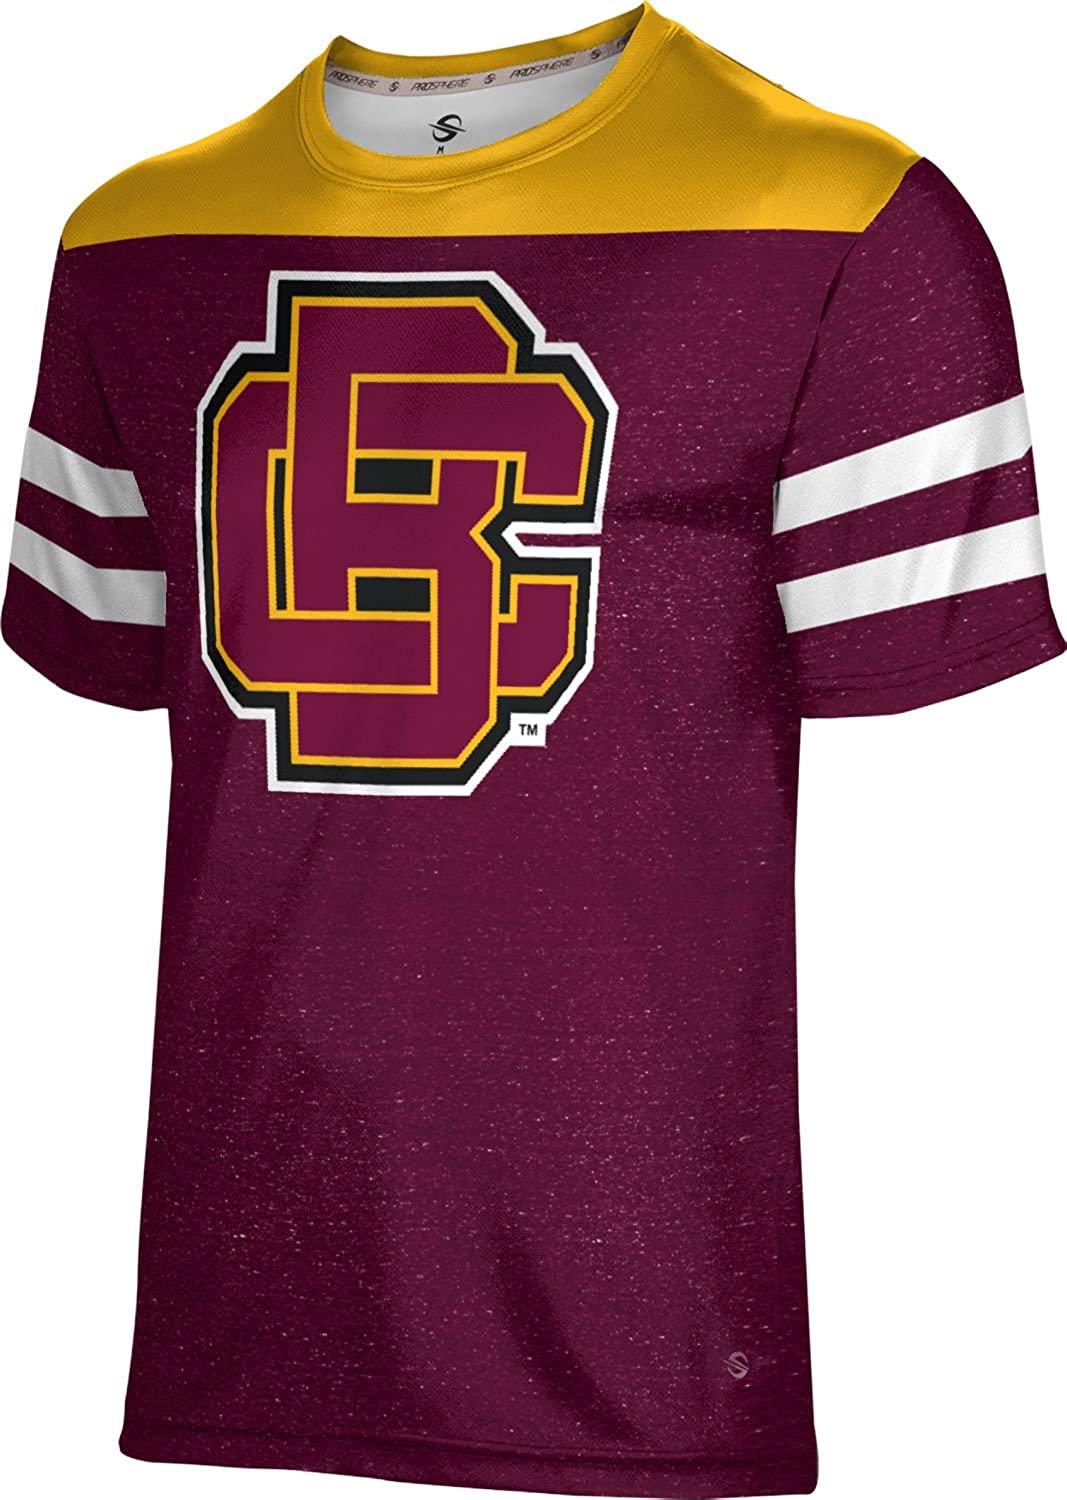 ProSphere Bethune-Cookman University Mens Performance T-Shirt Gameday